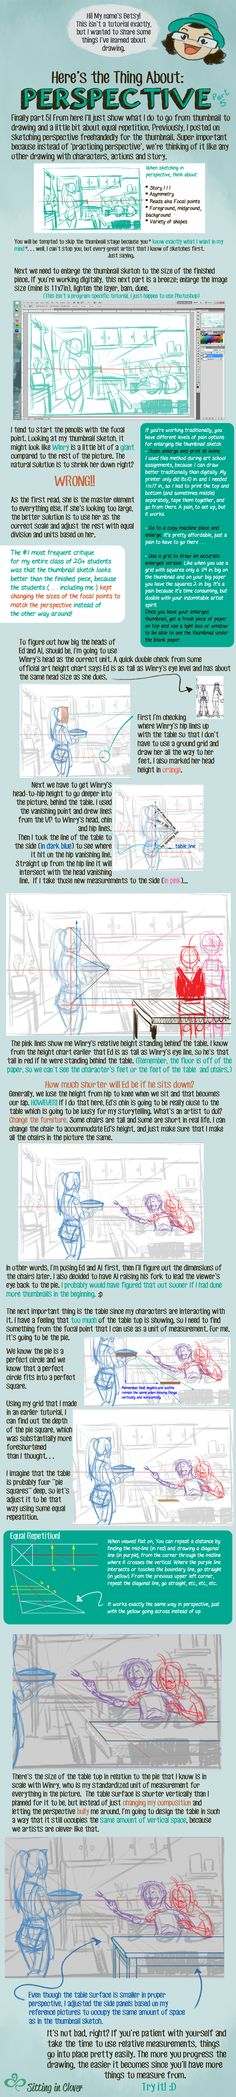 05 Here's the Thing About 1pt Perspective by betsyillustration on DeviantArt